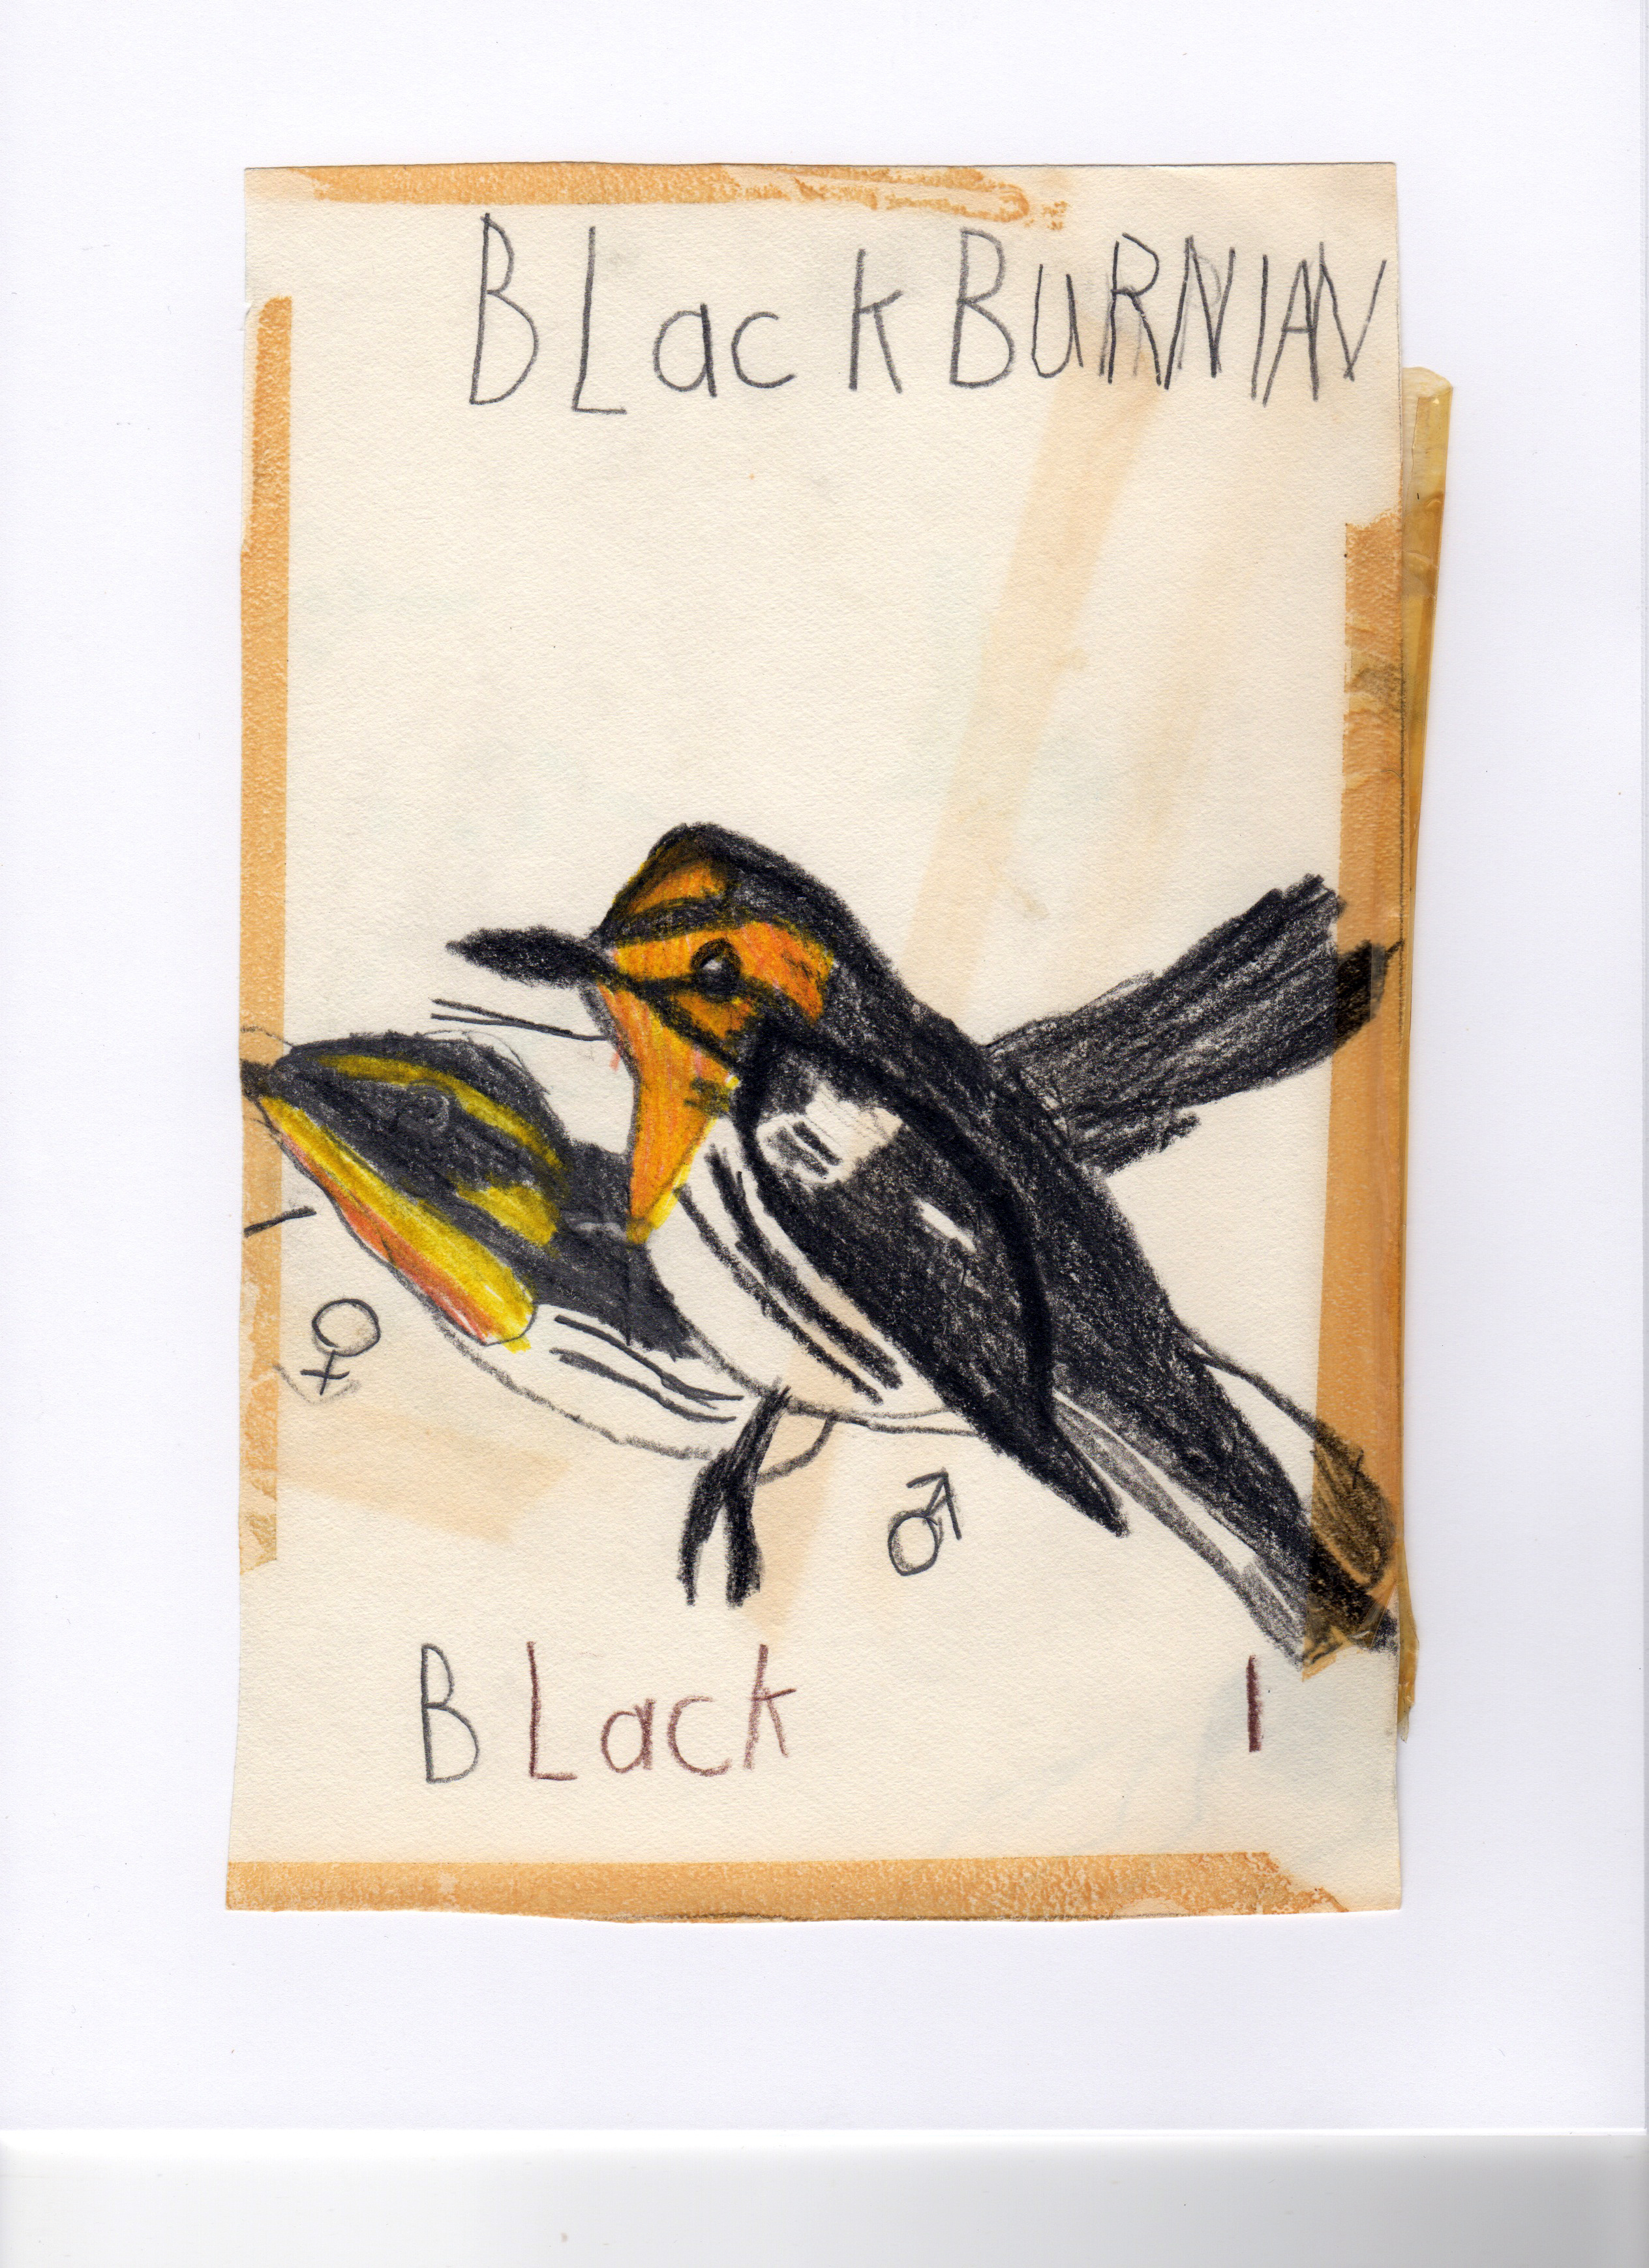 Prosek guesses that he was 5 years old when he made this colored pencil drawing of a Blackburnian warbler.